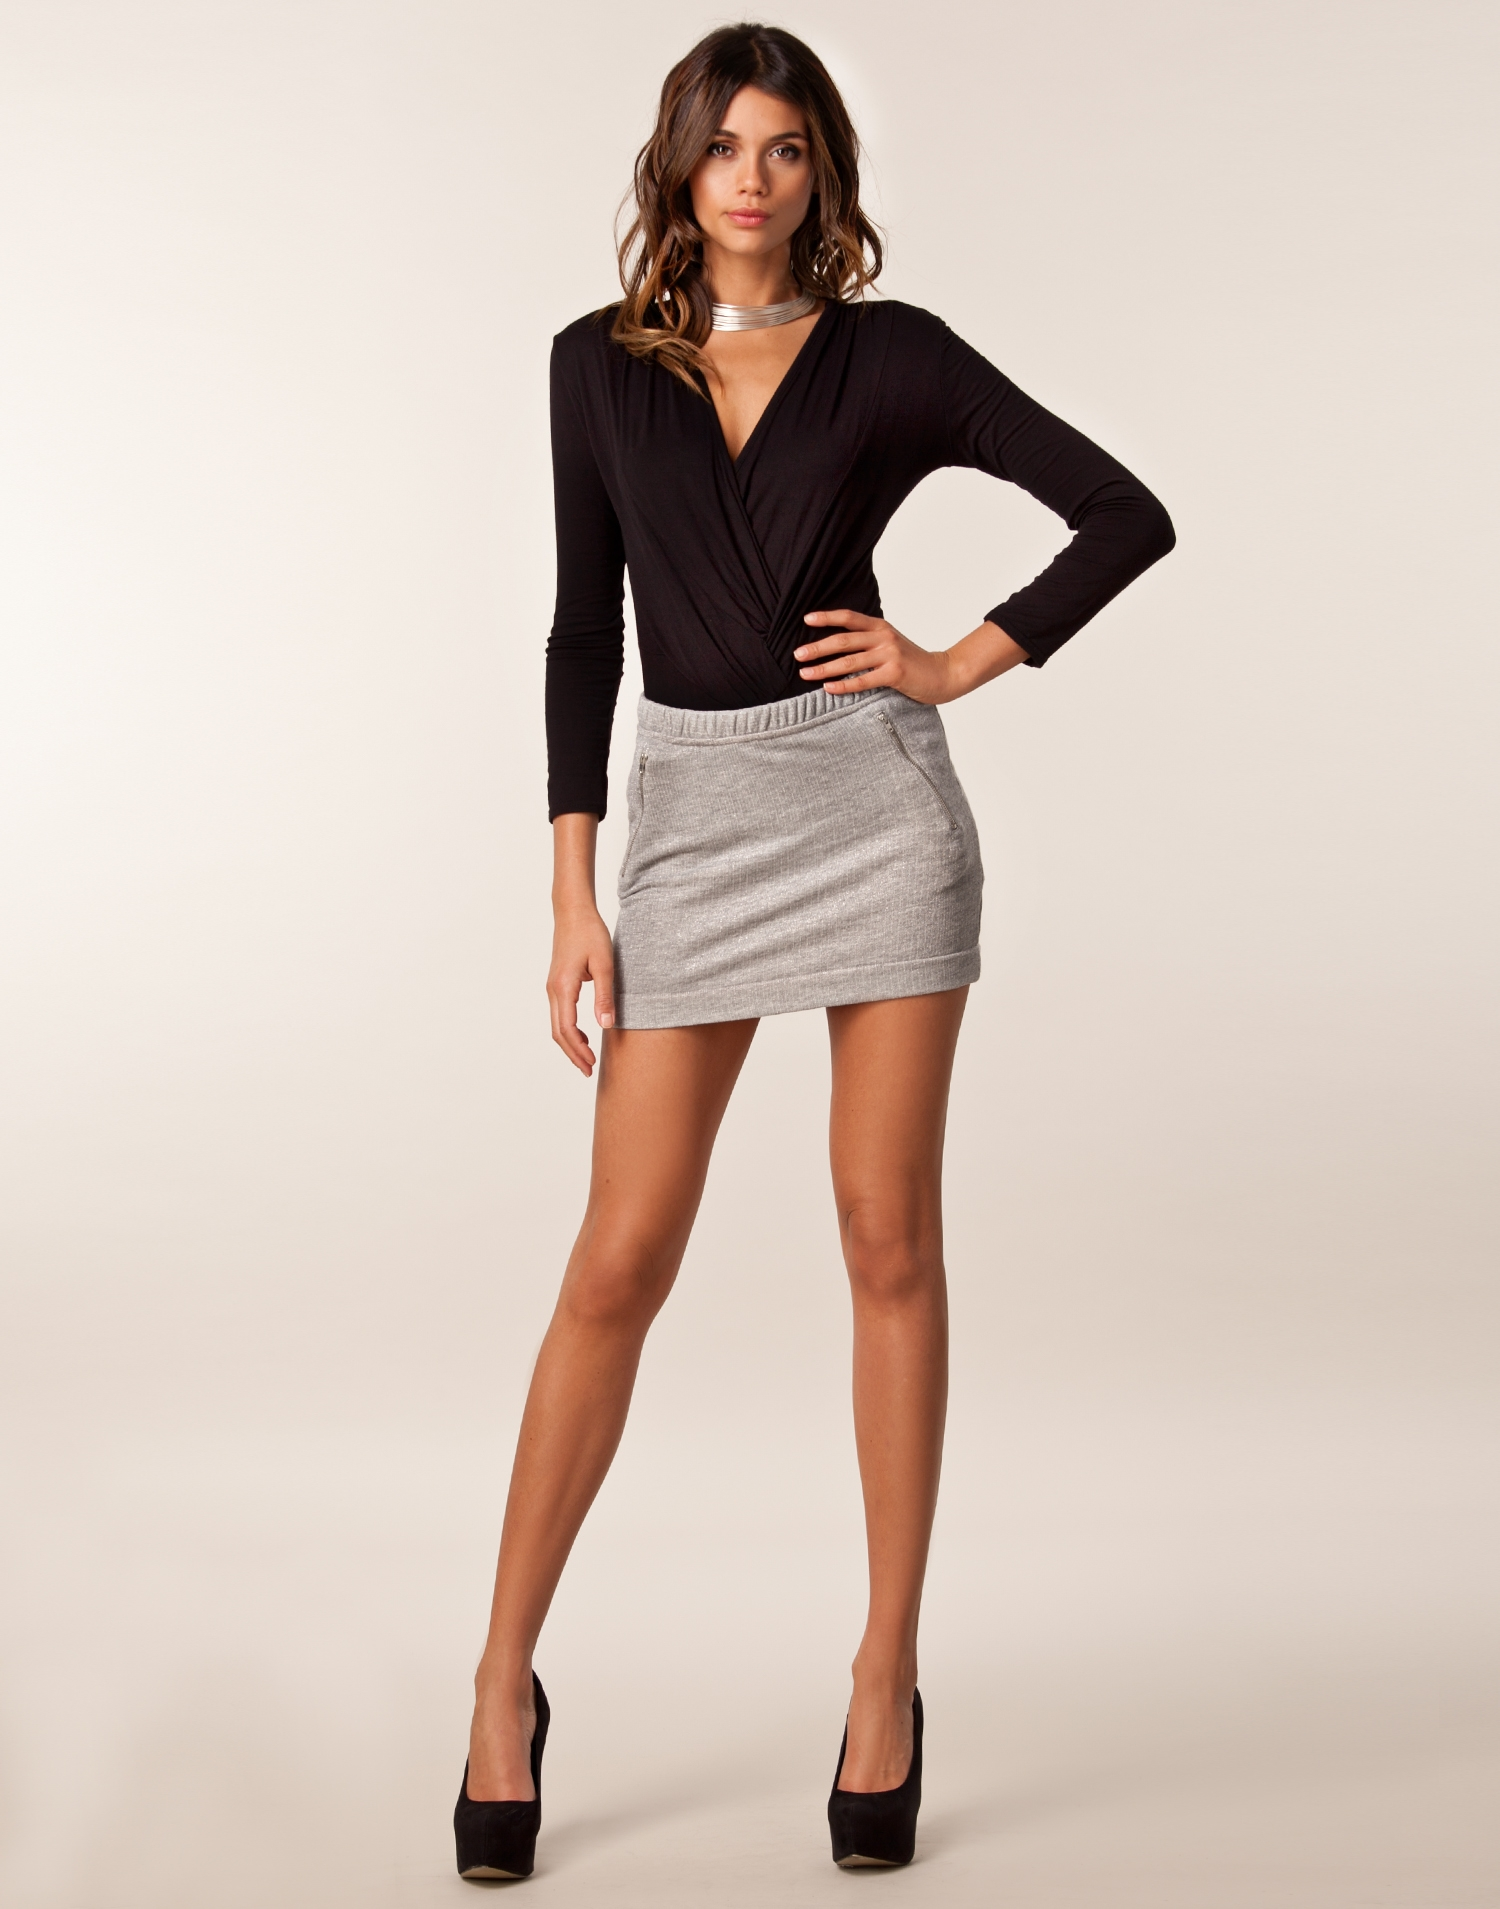 Ebony short skirt